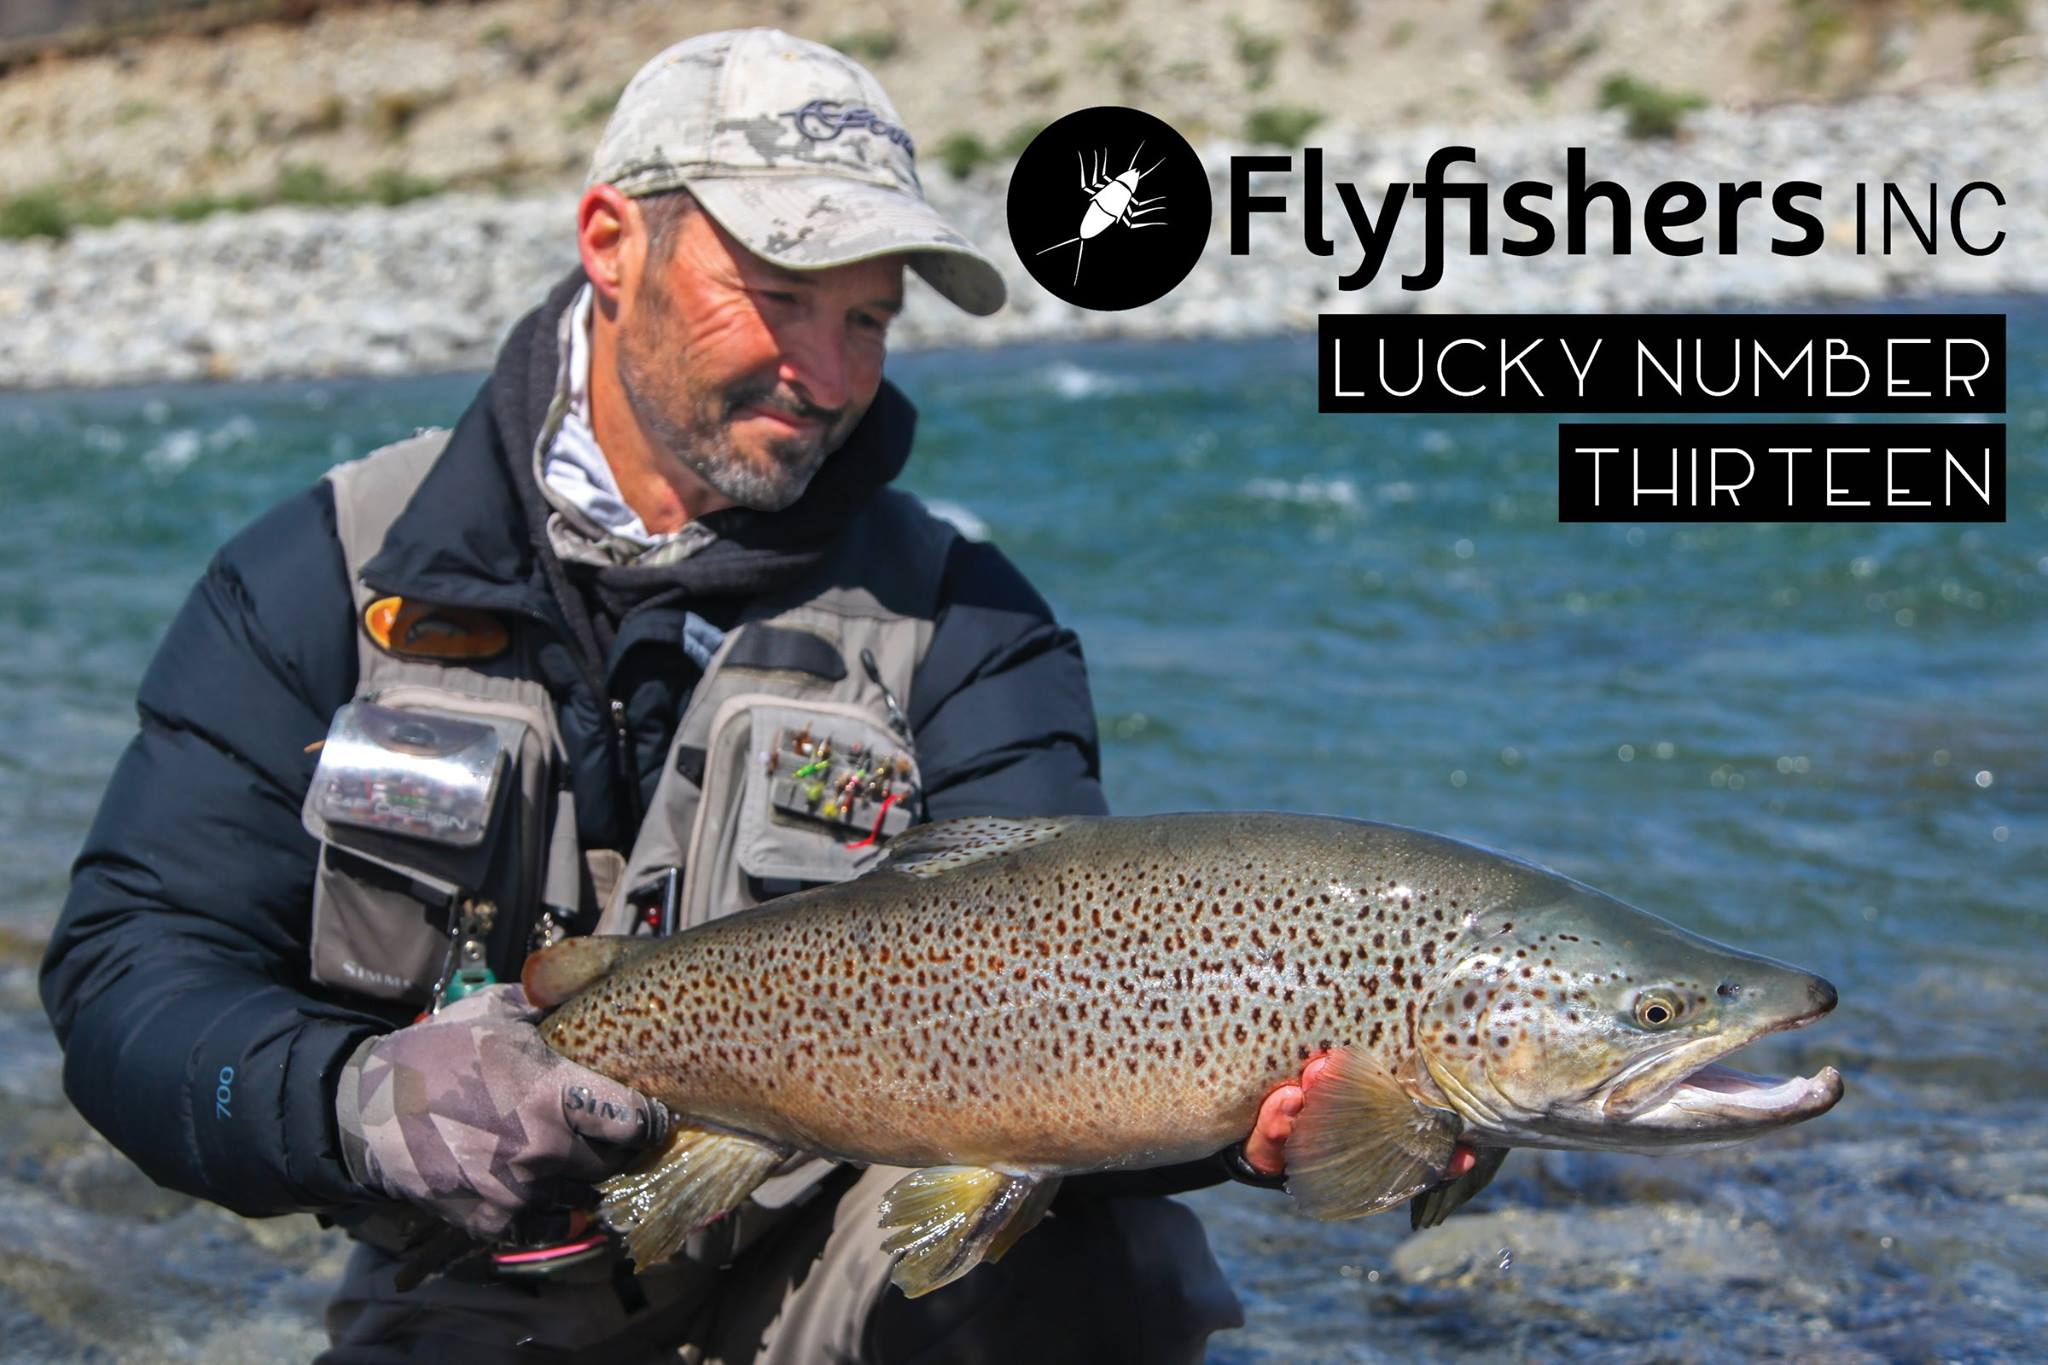 Merry Christmas all, here is our gift to you in the form of a new issue of Flyfishers Inc, lucky number 13! Hot off the press we have Mr Mike Kirkpatrick of Latitude Guiding on the cover showing us what an average fish looks like in his neck of the woods. Inside is the usual super high standard of photography and story writing from our manic mates plus plenty of new gear to check out for gift ideas leading up to the big day. Enjoy!